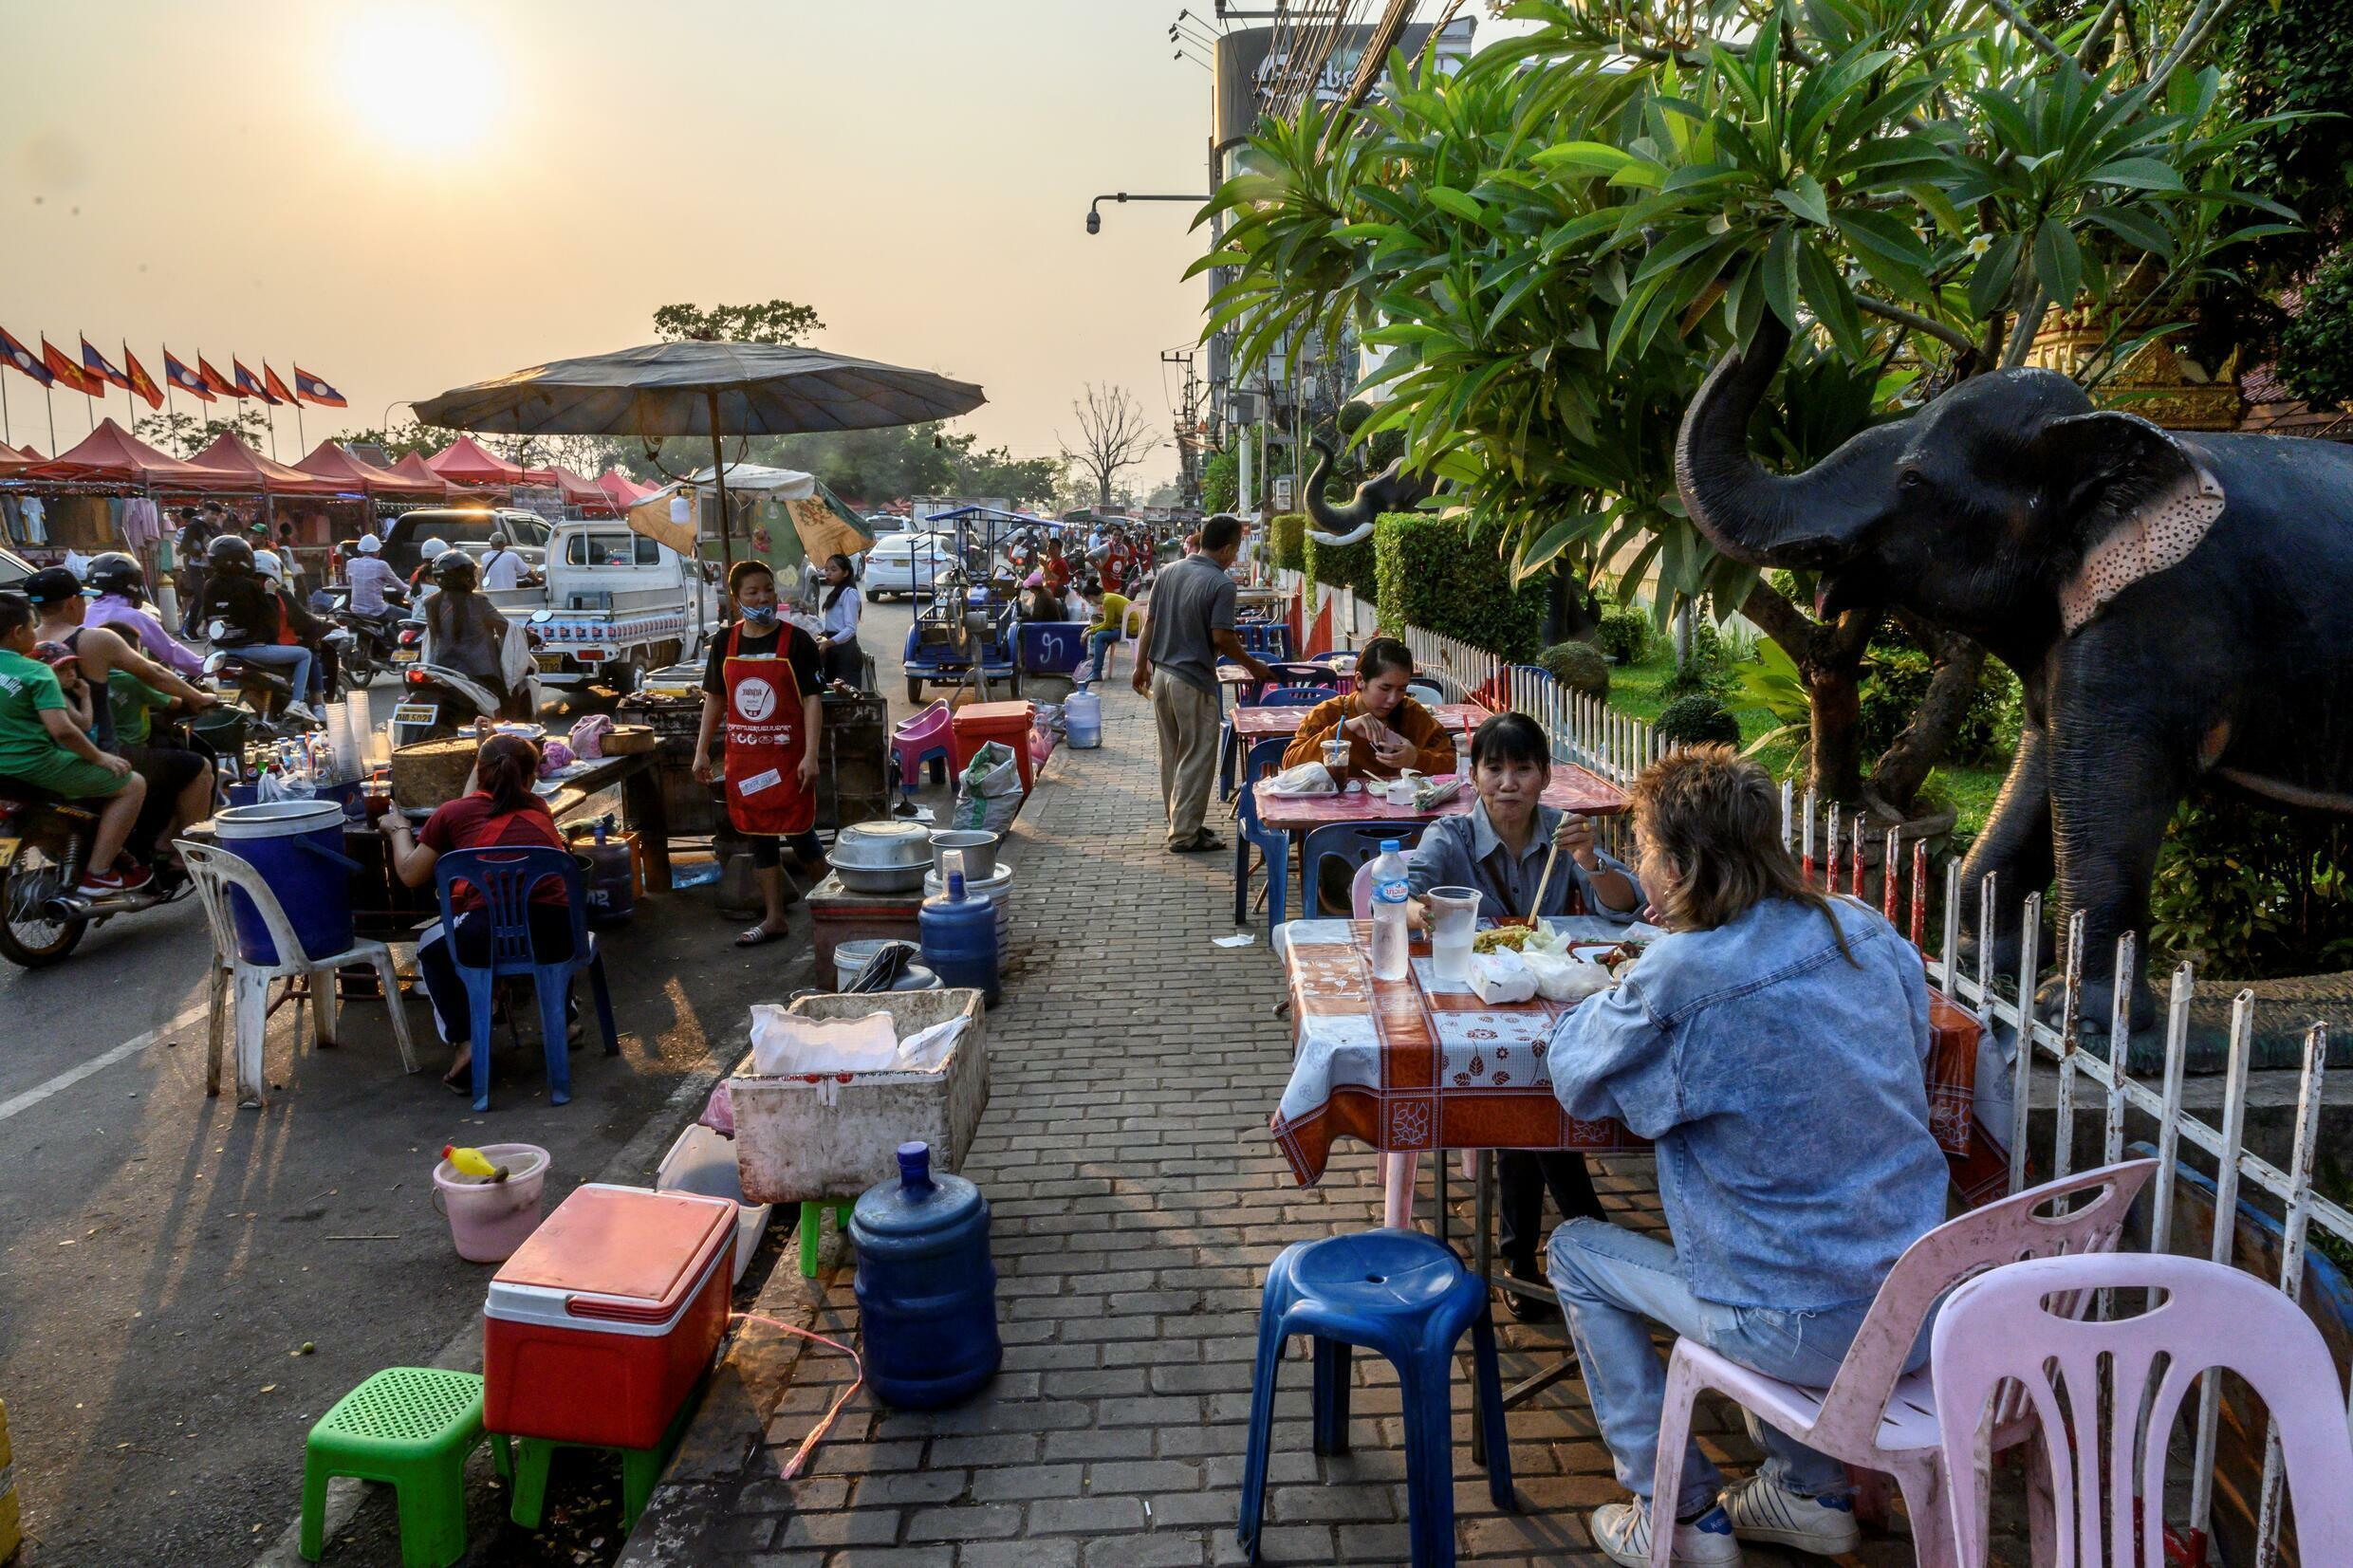 Selling street food in the Laos capital Vientiane has been banned as part of Covid restrictions